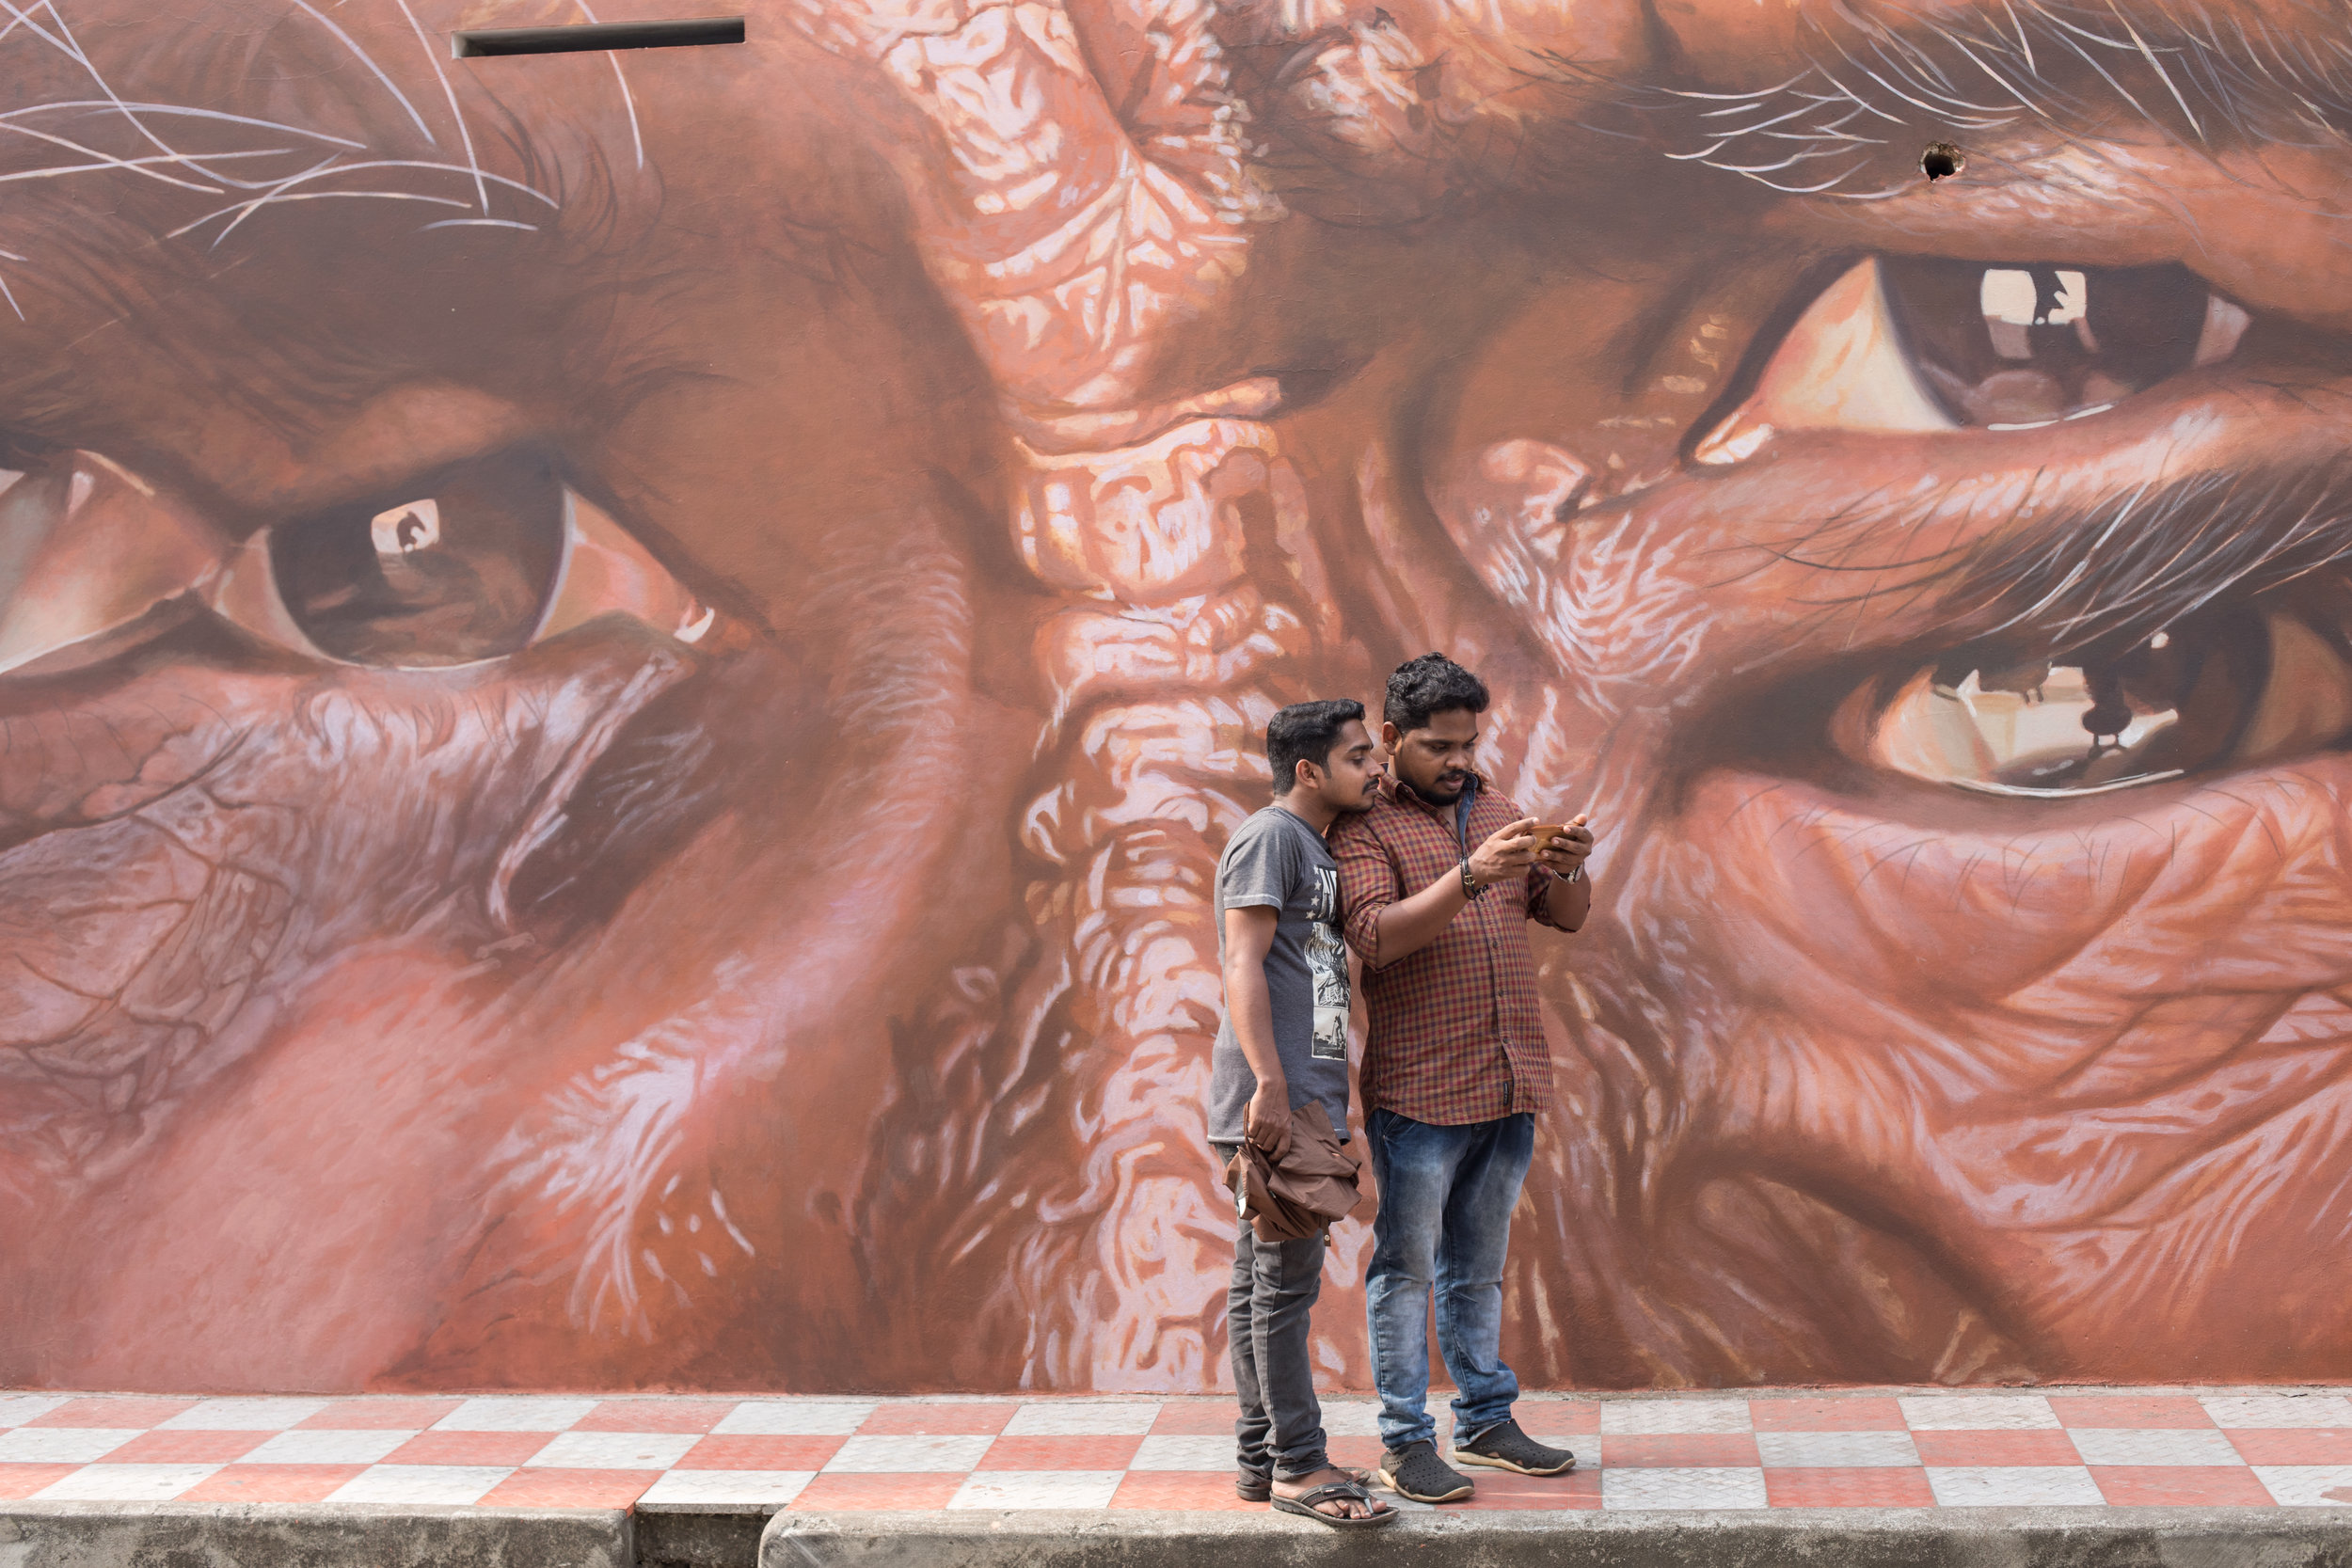 Street Photography and Art at the Kochi-Muziris Biennale 2018.